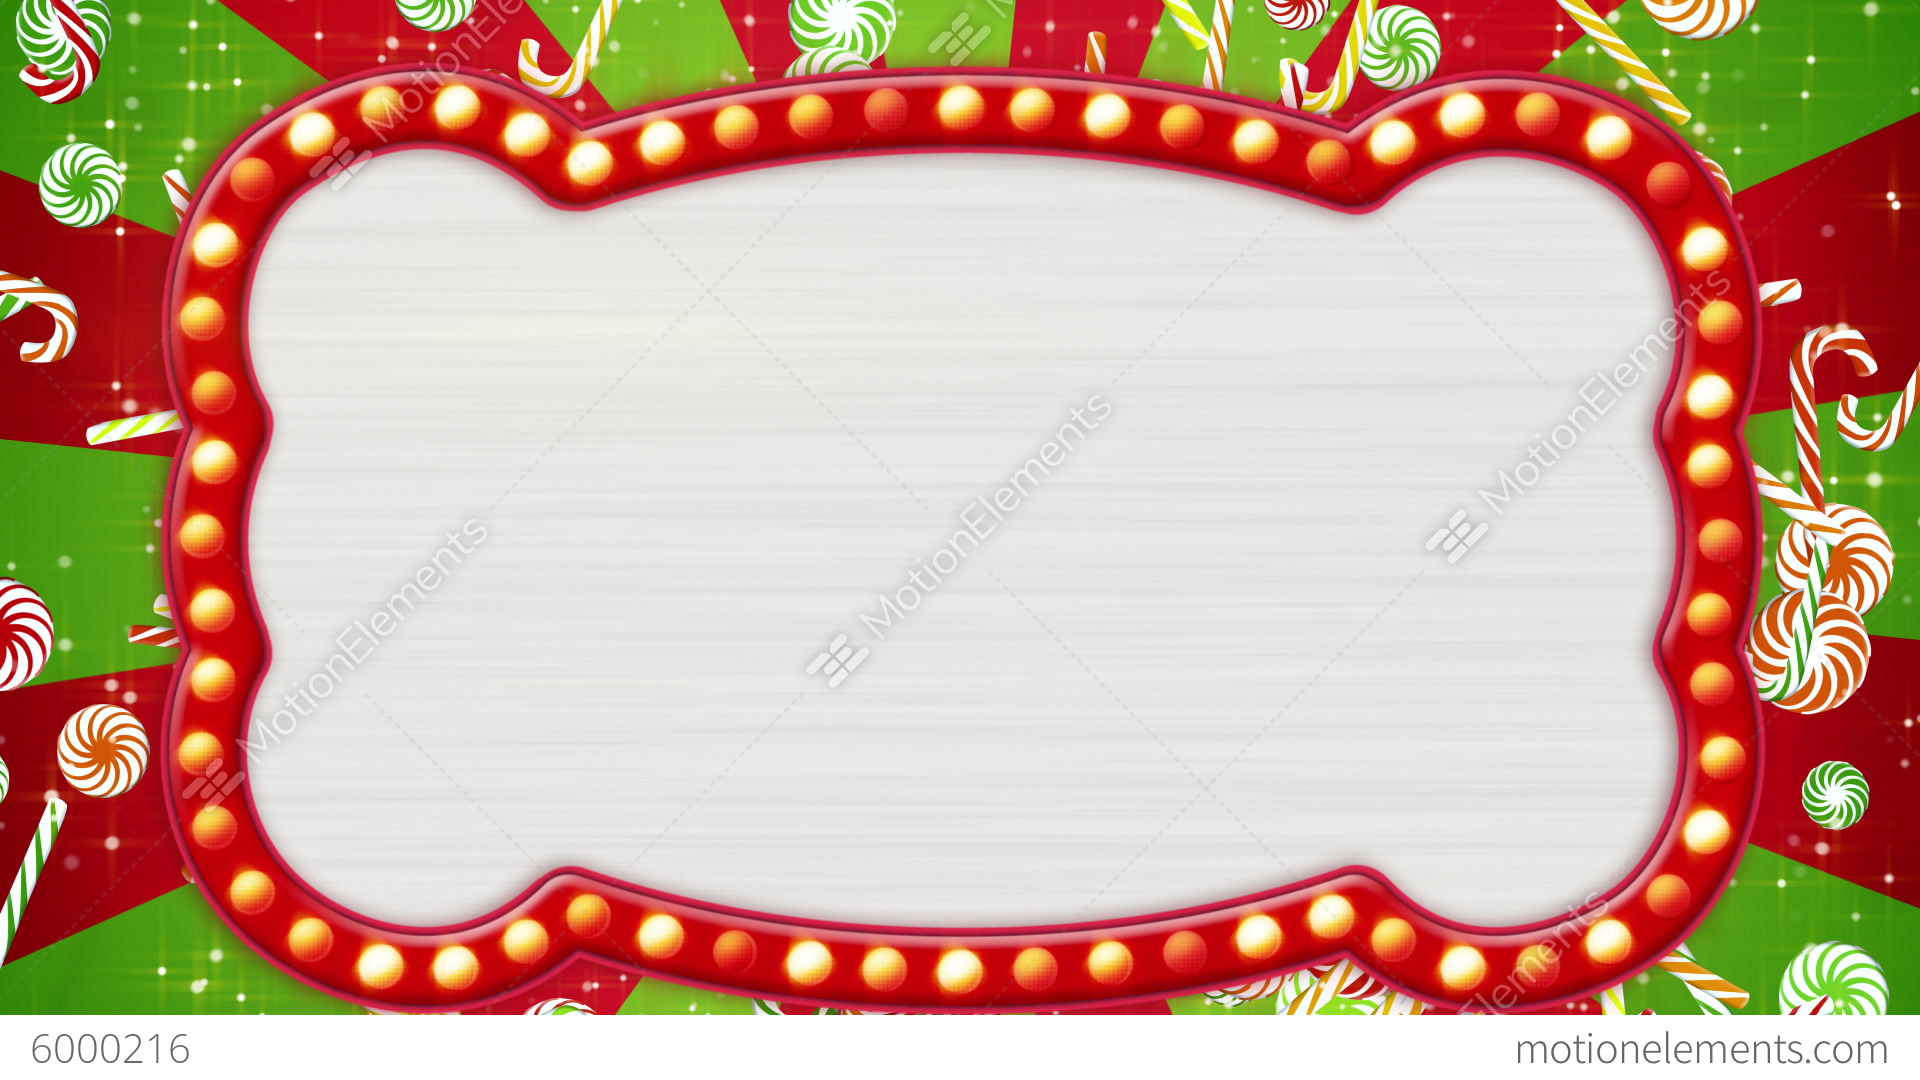 Flash Light Bulbs Banner And Christmas Candy Canes Stock